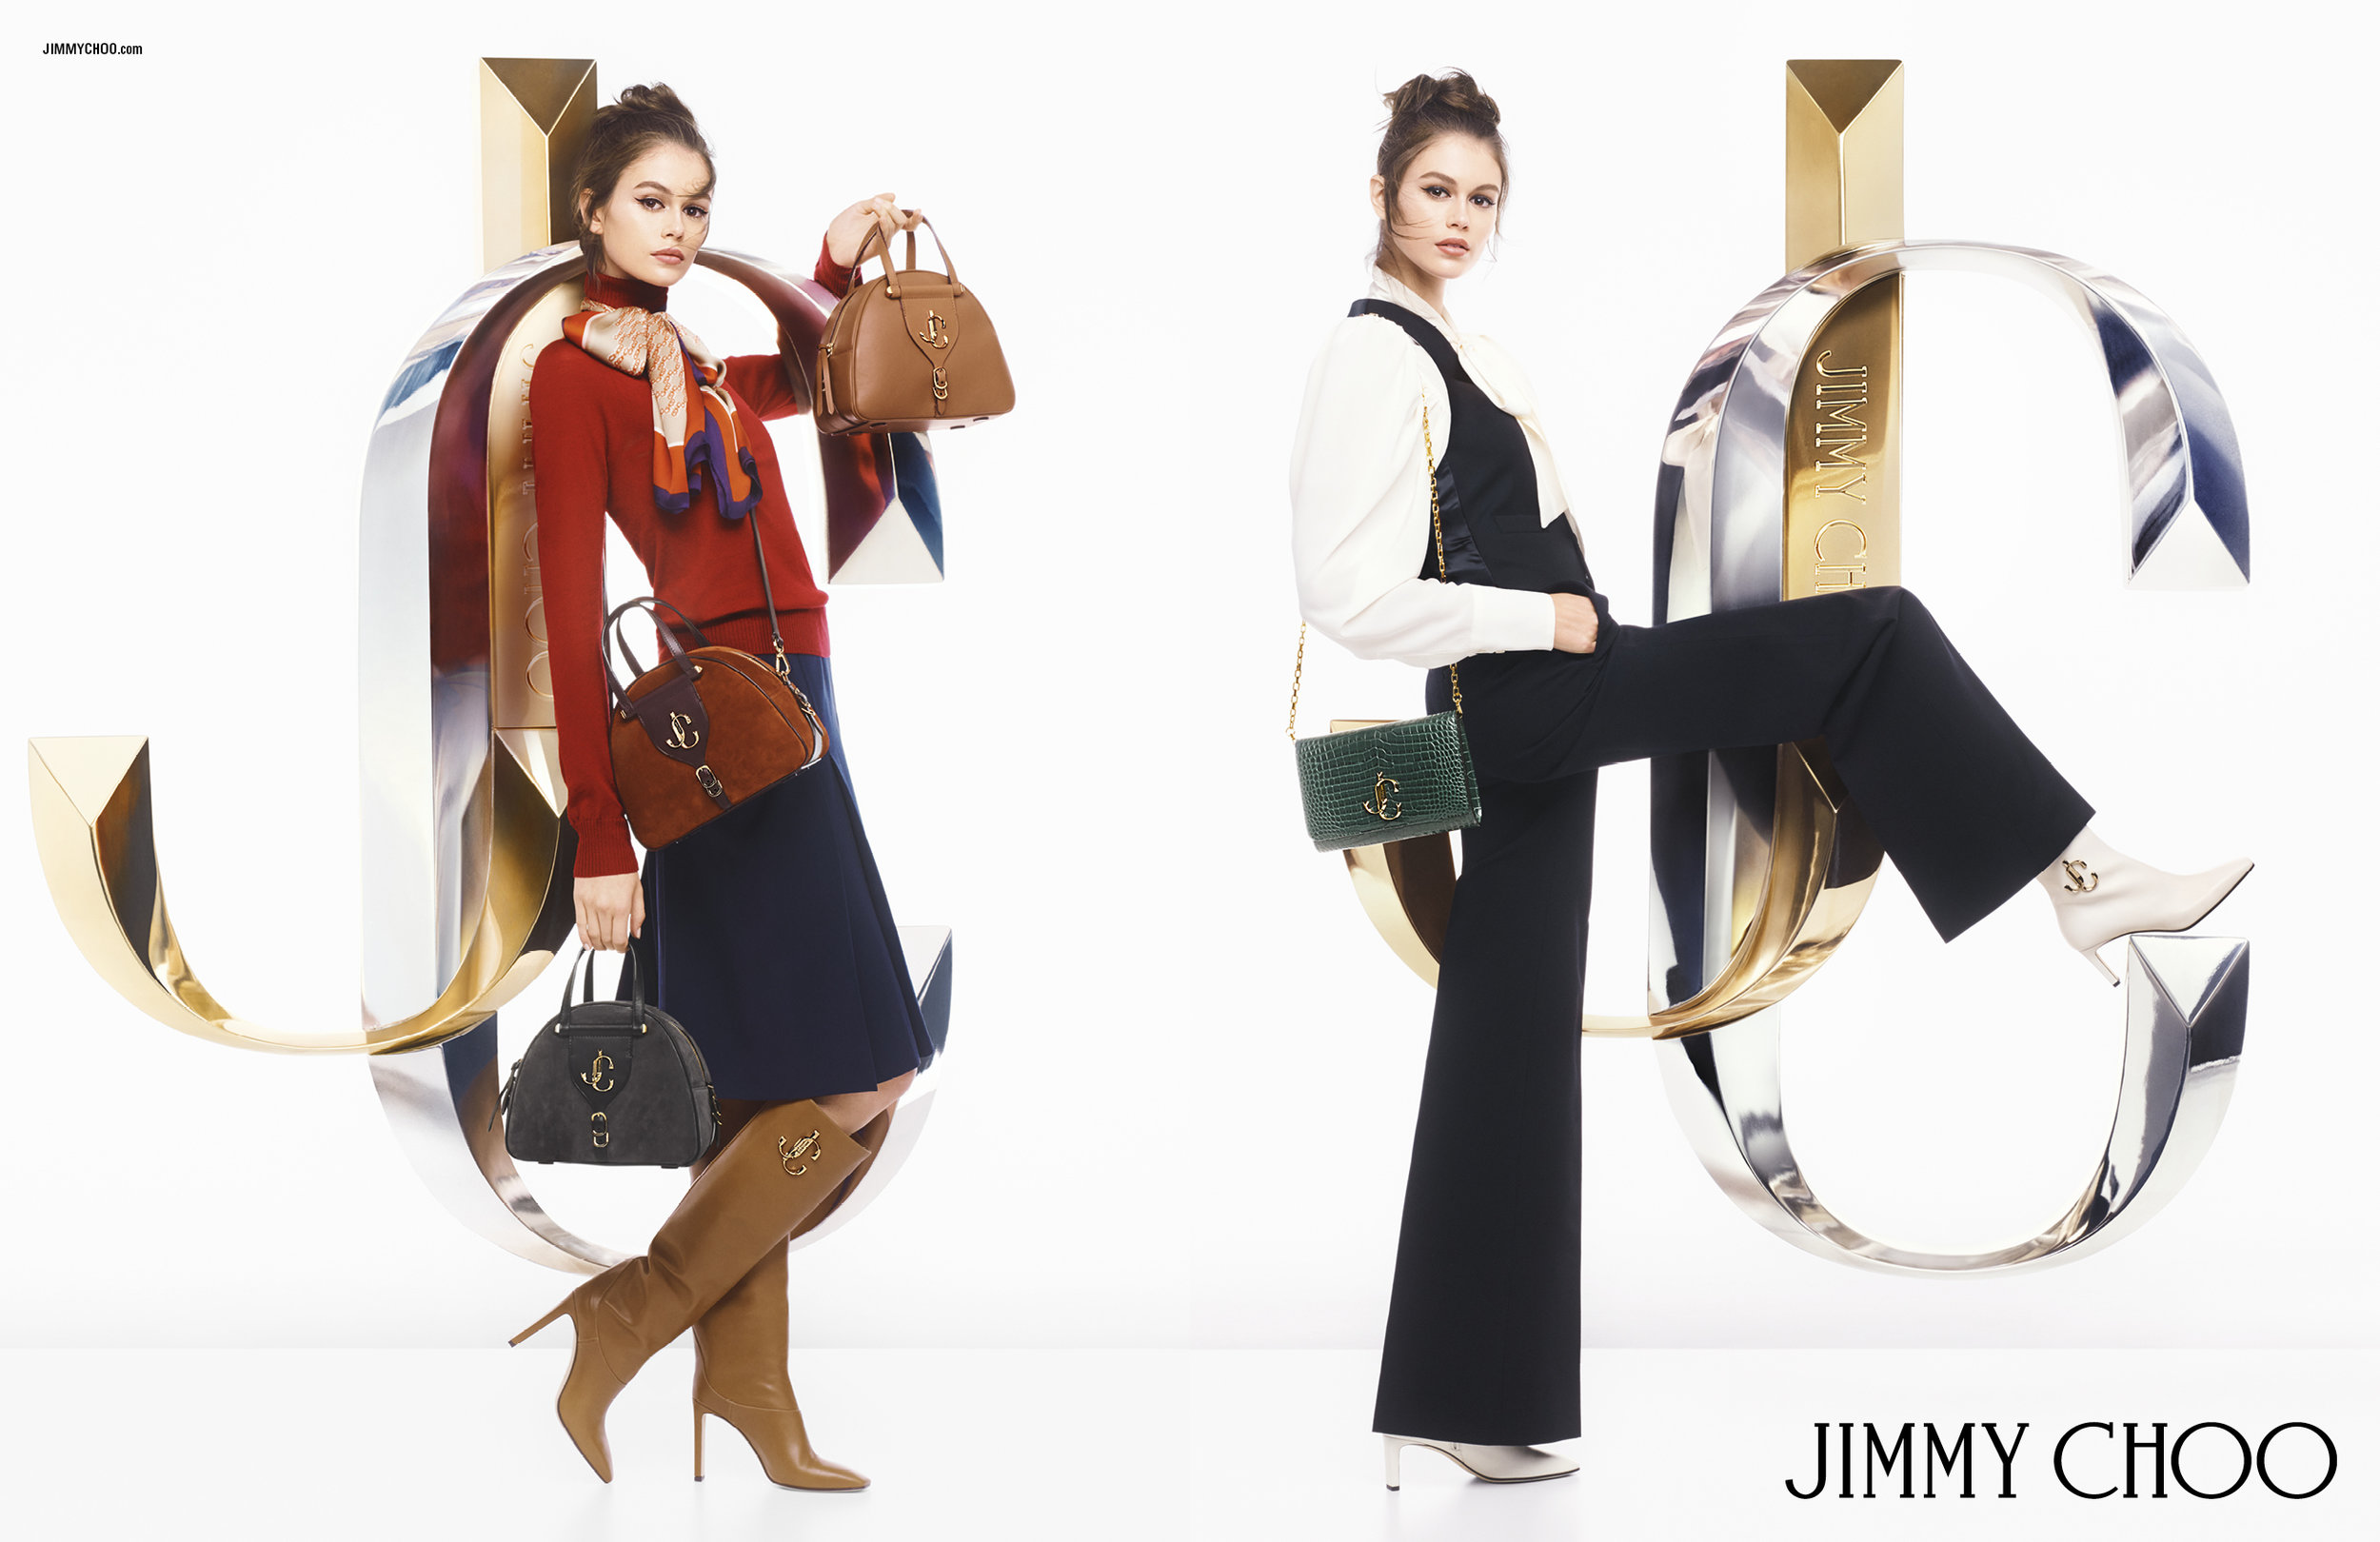 jimmy_choo_fall_2019_campaign1.jpg